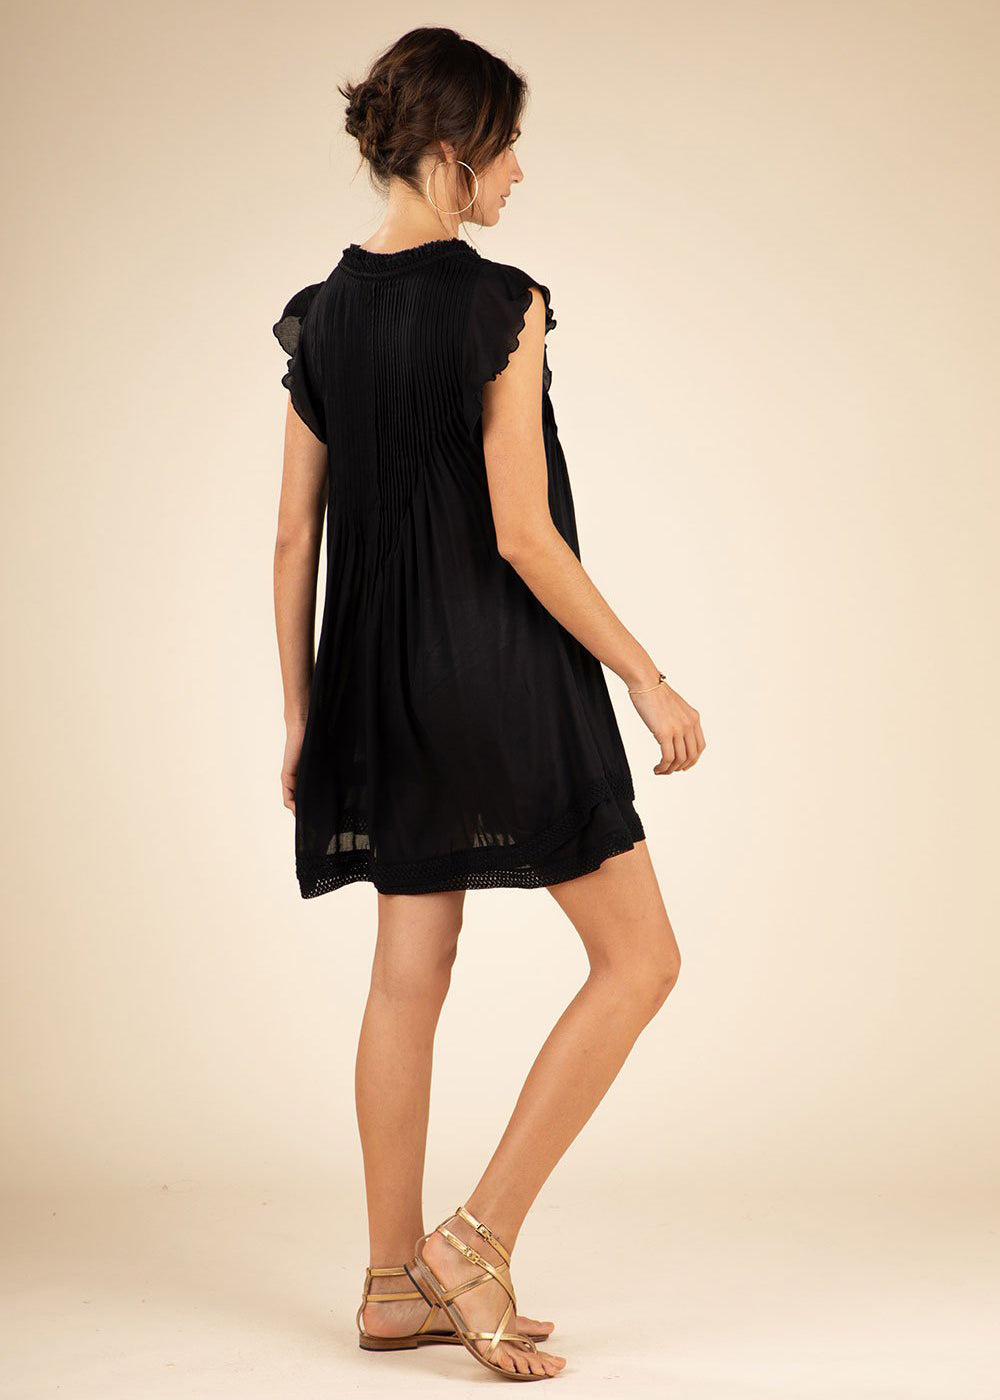 Poupette St Barths Mini Dress Sasha Lace Trimmed |Black|